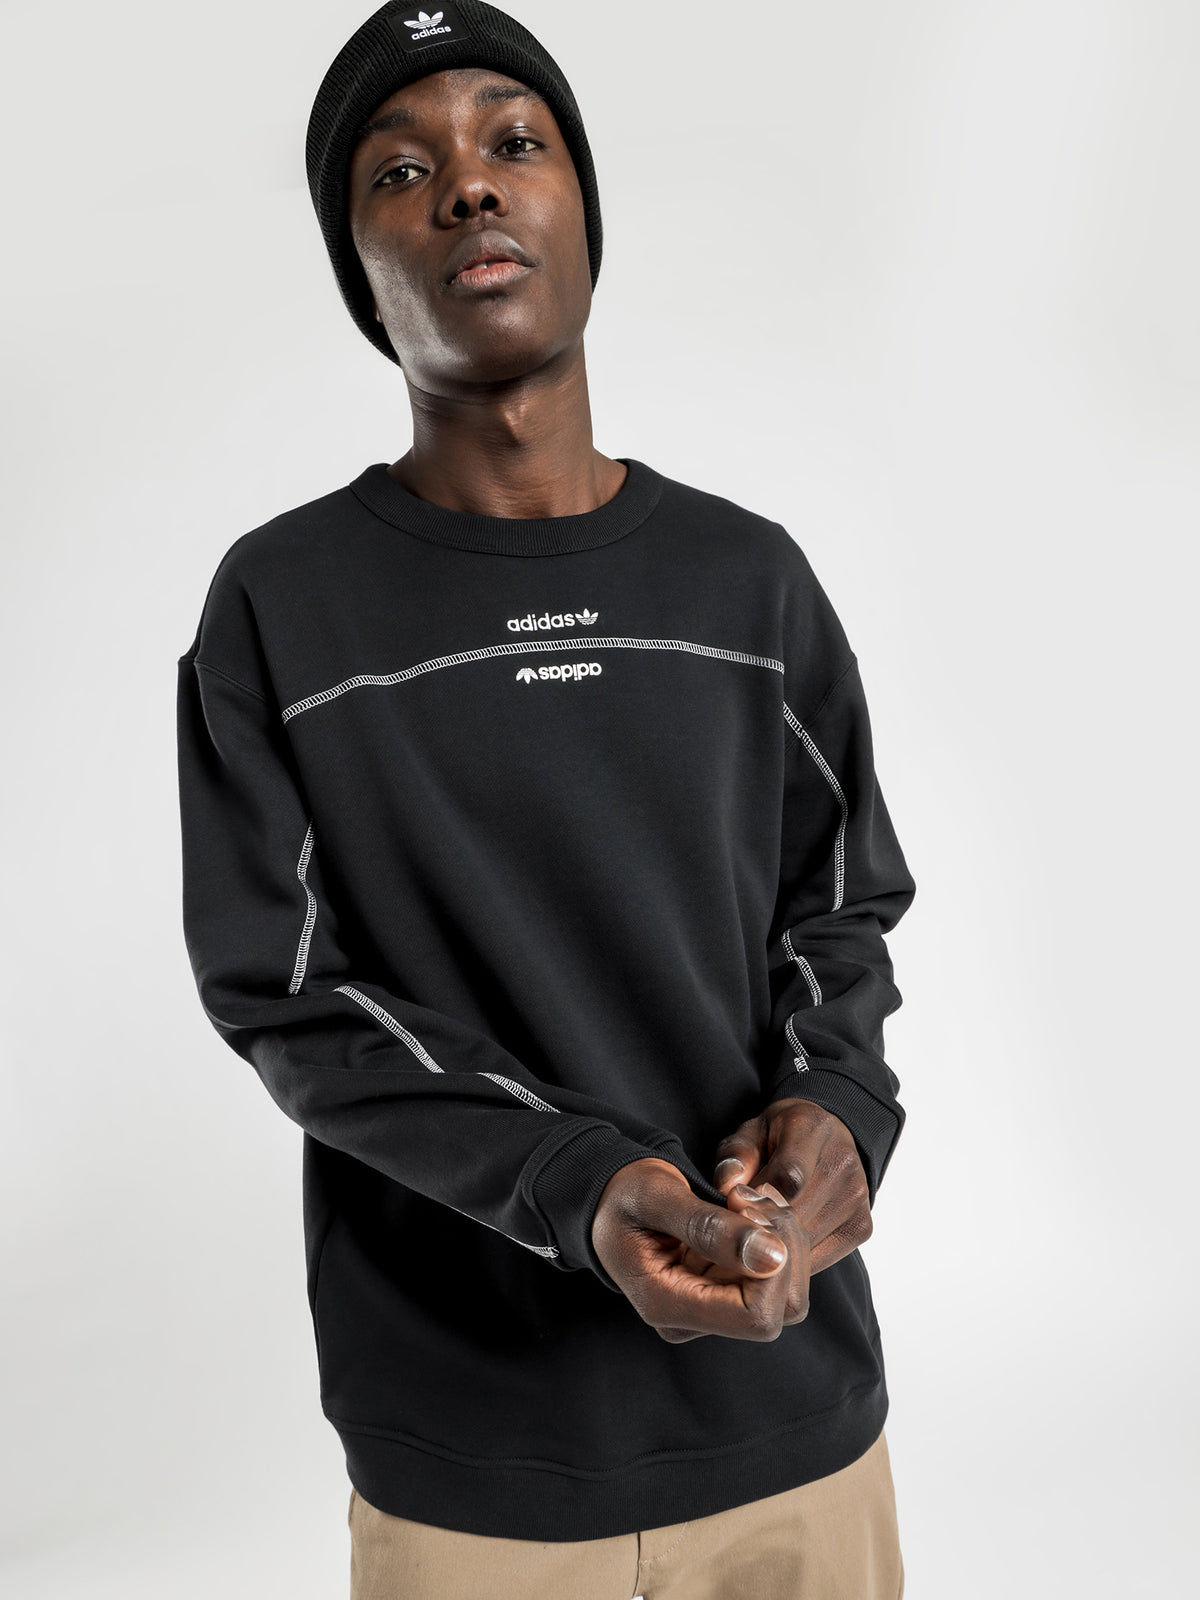 Adidas Crew Sweatshirt in Black